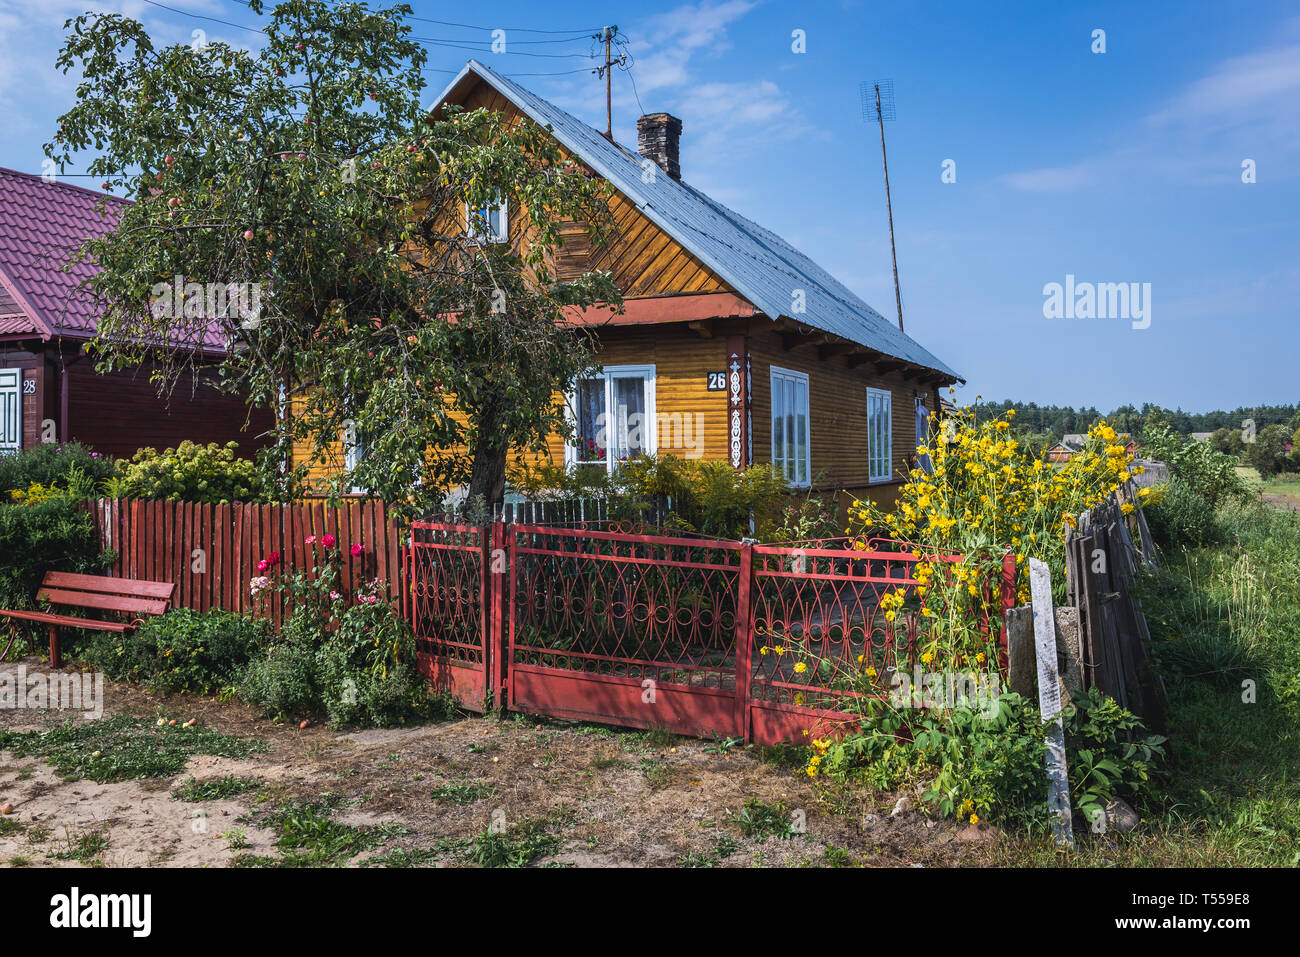 Houses in Soce village on so called The Land of Open Shutters trail, famous for traditional architecture in Podlaskie Voivodeship, Poland - Stock Image